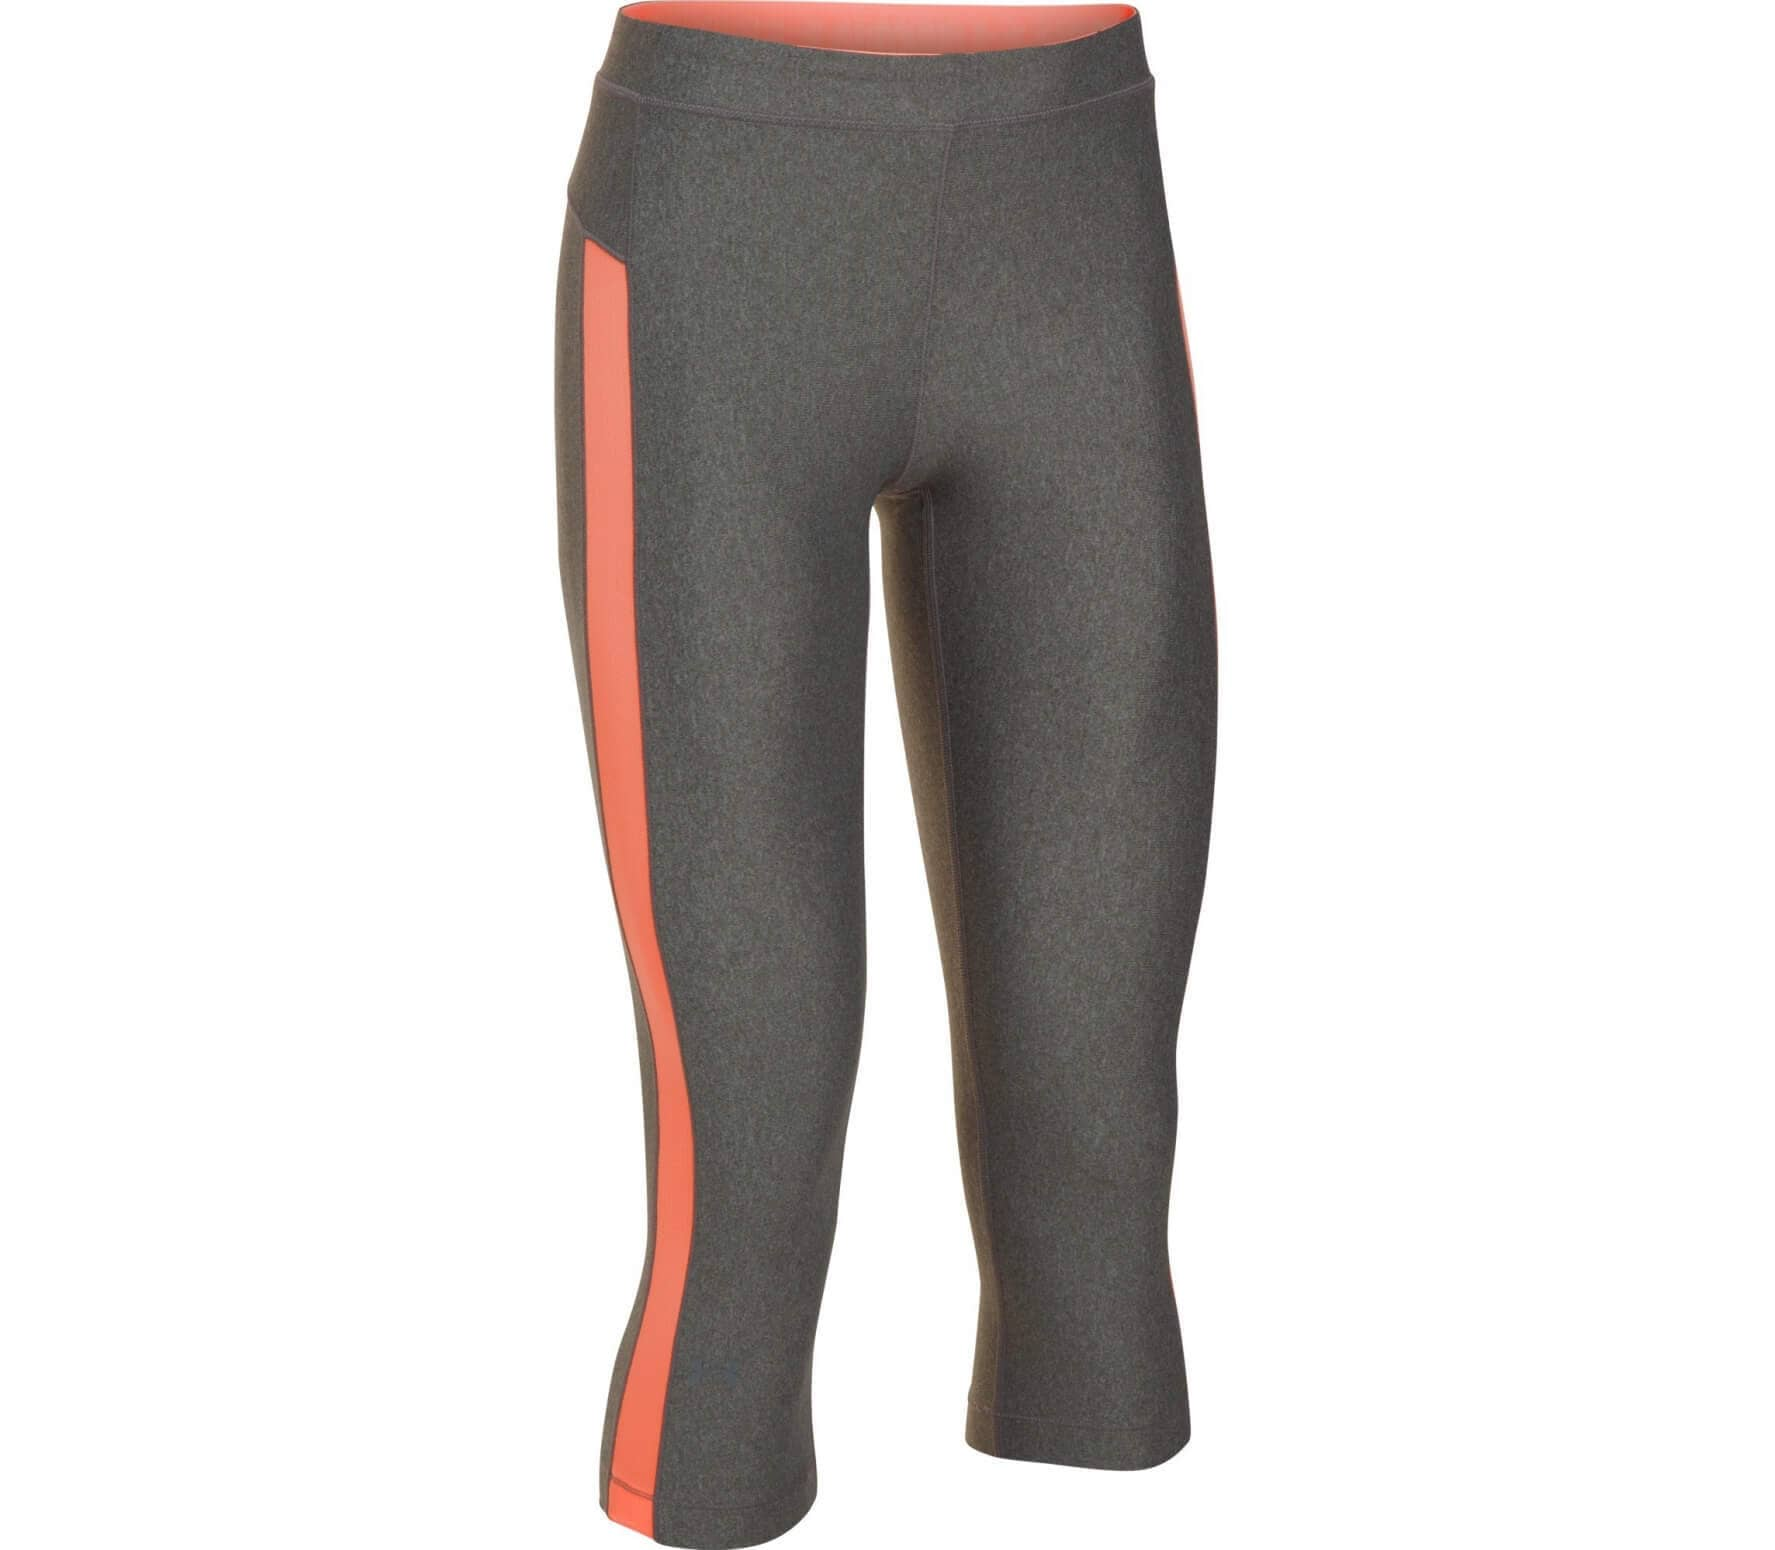 e7287548ced54 Under Armour - Heatgear Armour Coolswitch women's training pants  (grey/orange)